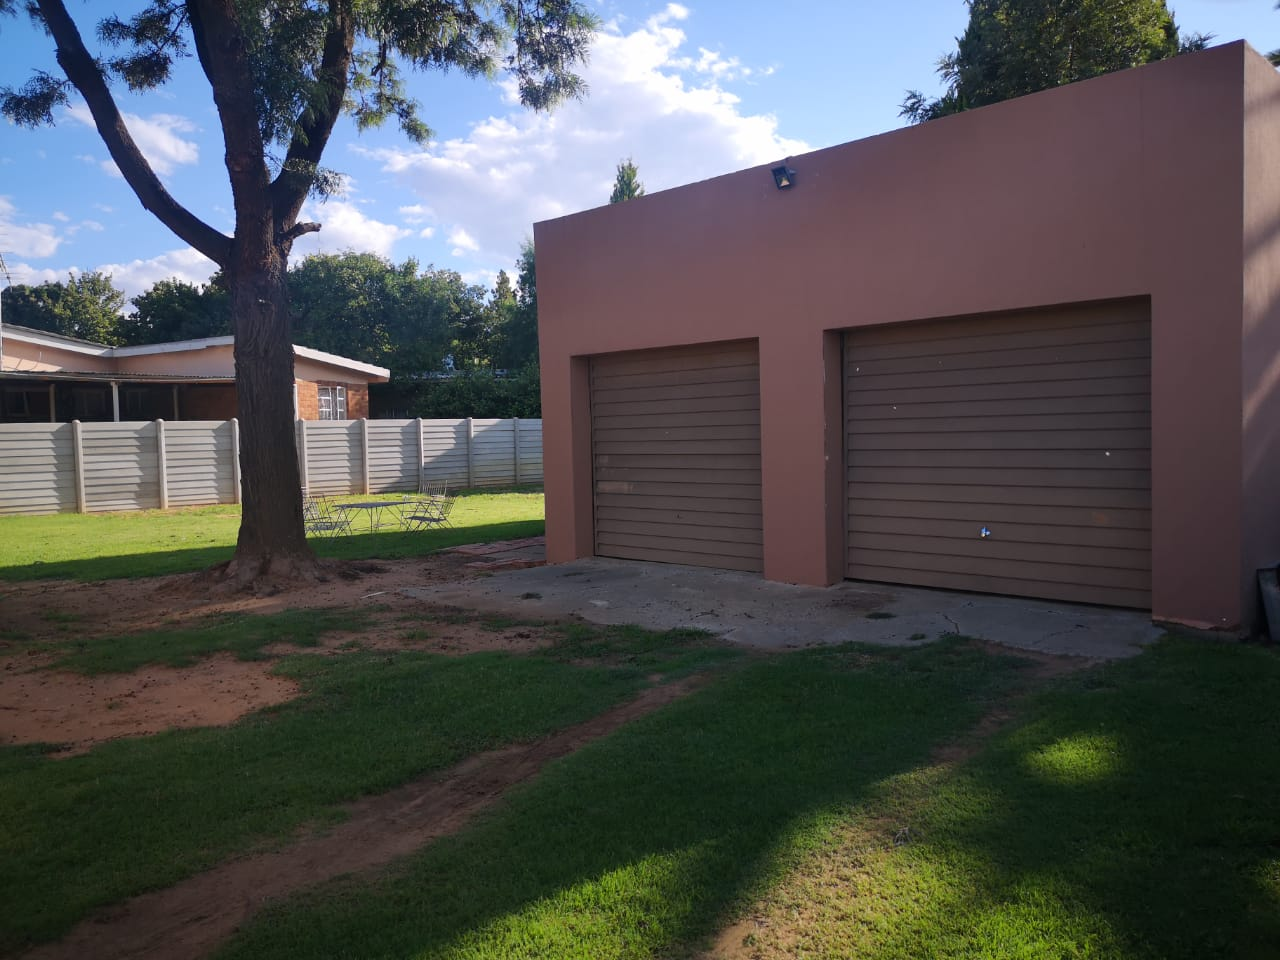 3 Bedroom house for sale in Naudeville Welkom.